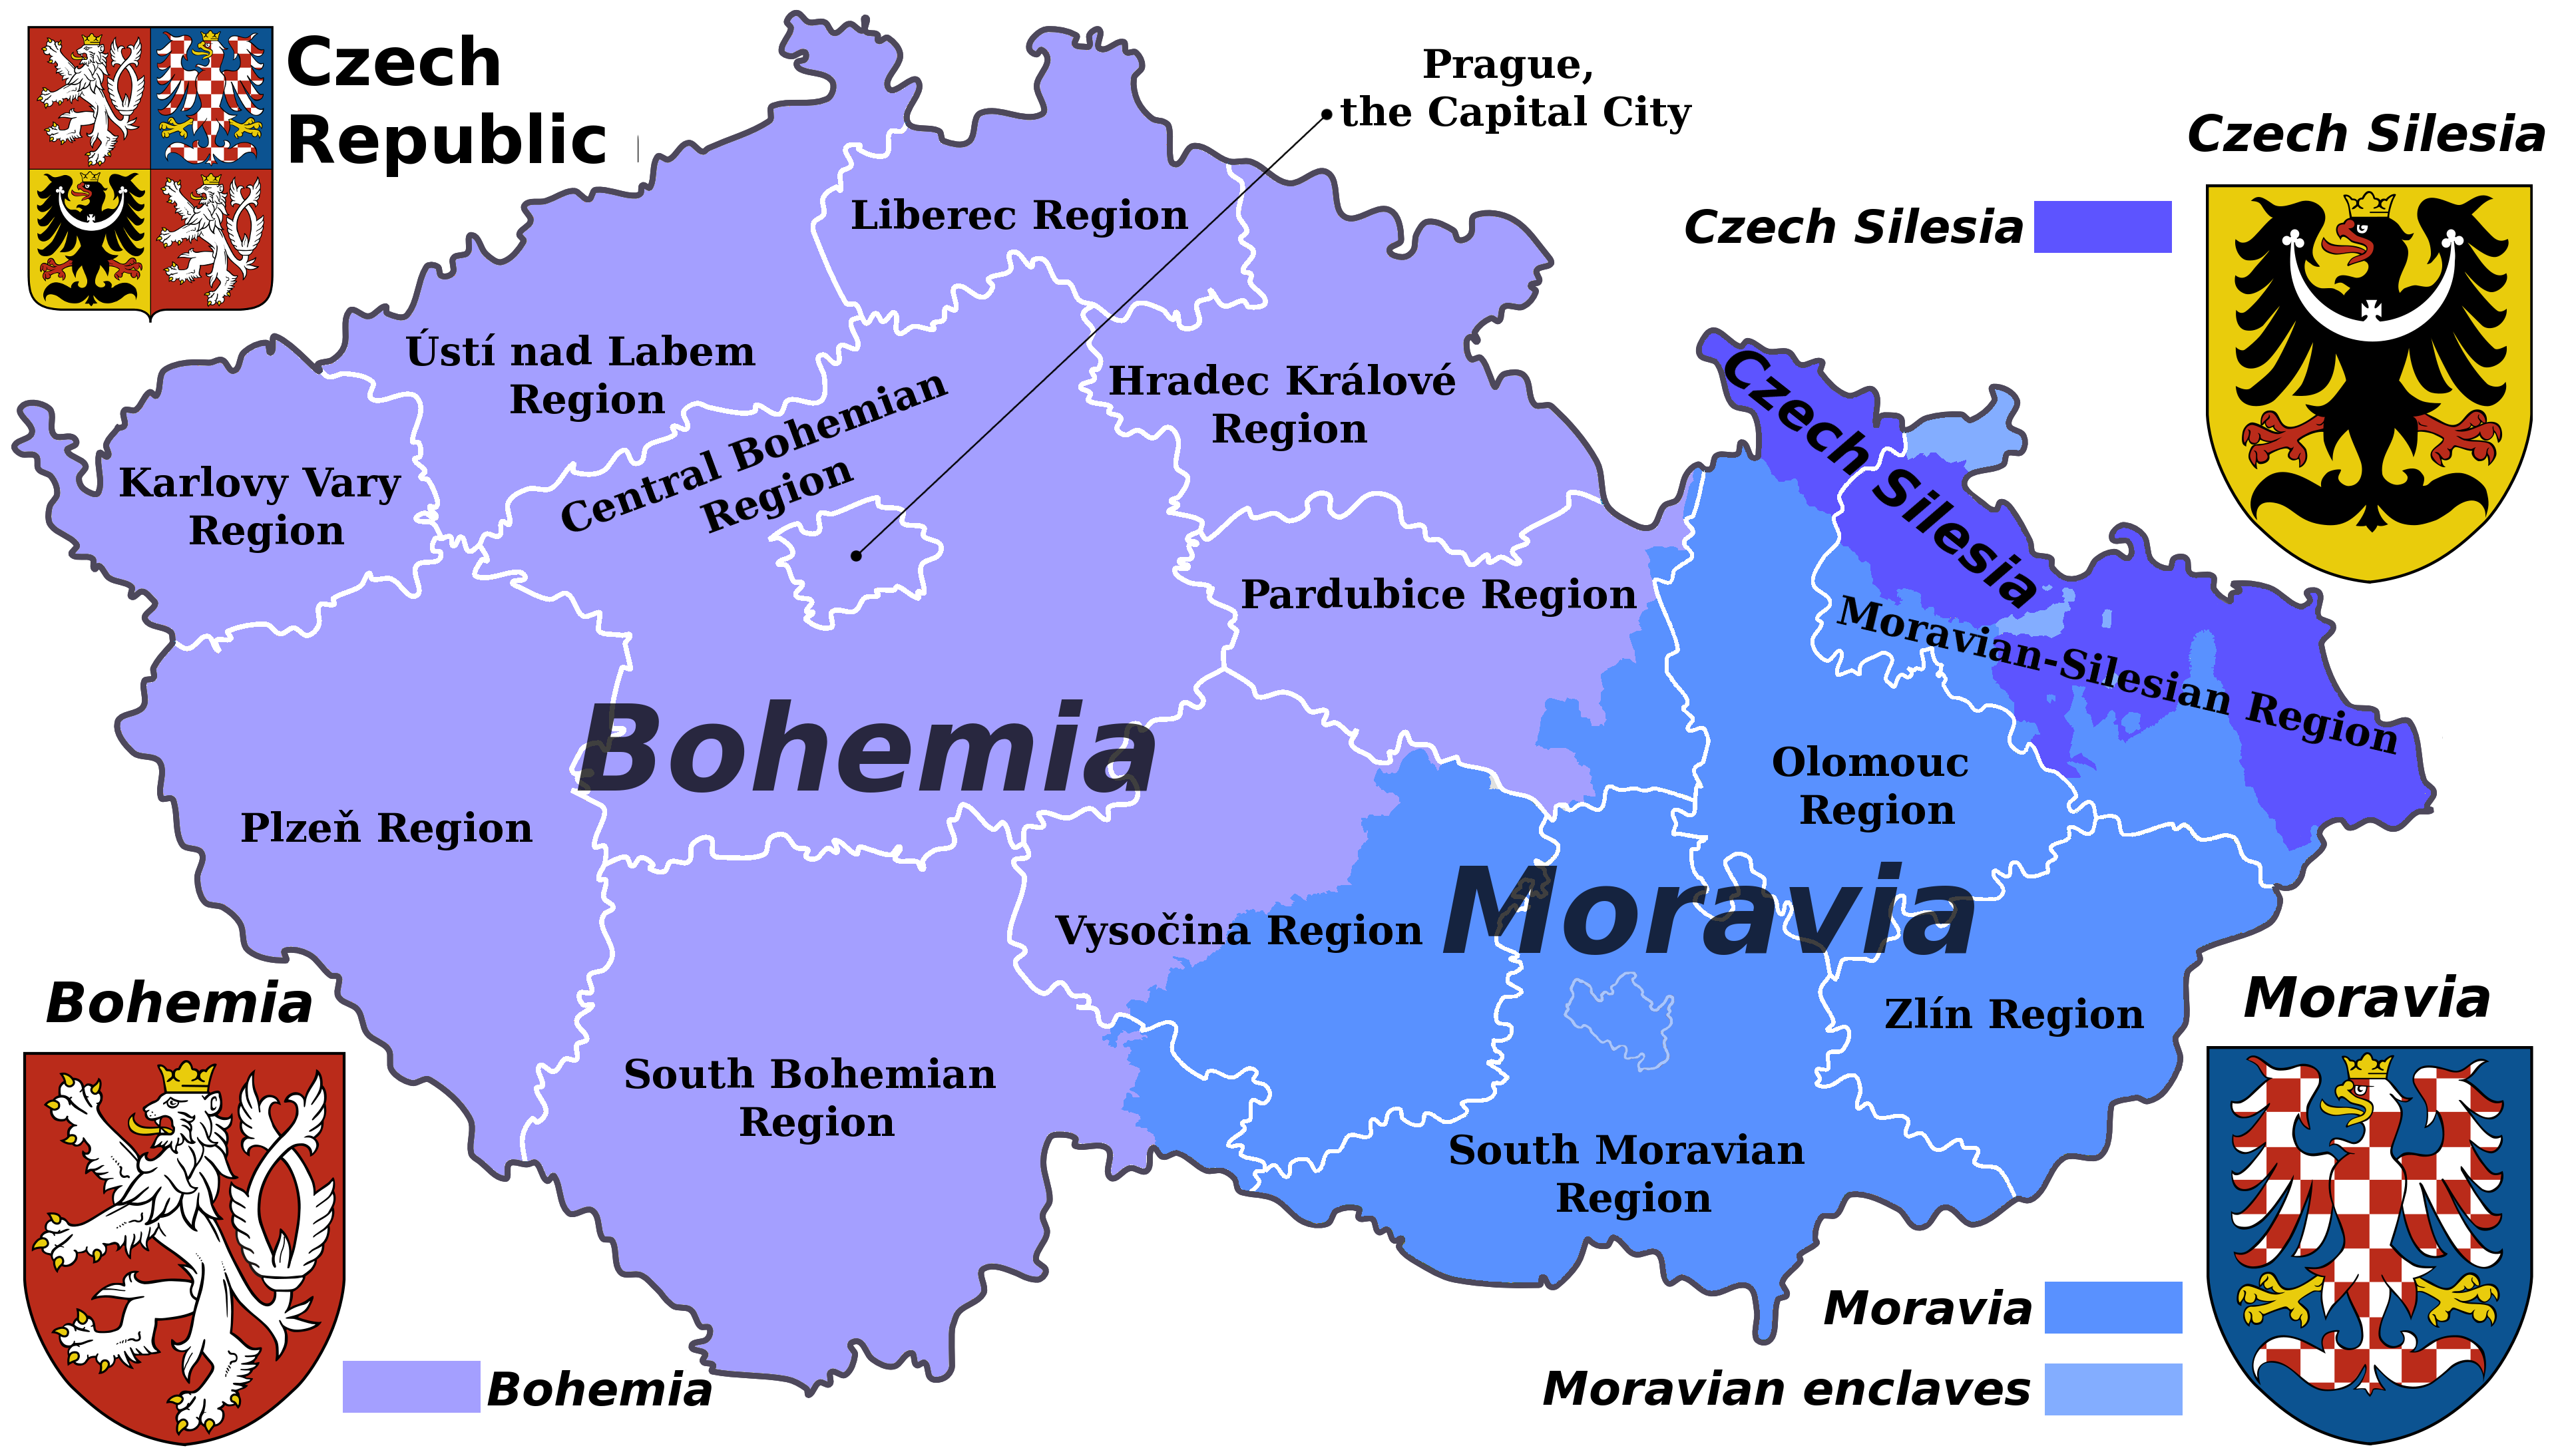 the main cause in the split of the czech and slovak republic in 1993 Spit of the csfr essayswhat do you think was the main cause in the split in the csfr could the split have been avoided csfr was divided into two separate independent countries: the czech republic and slovak republic on 111993.